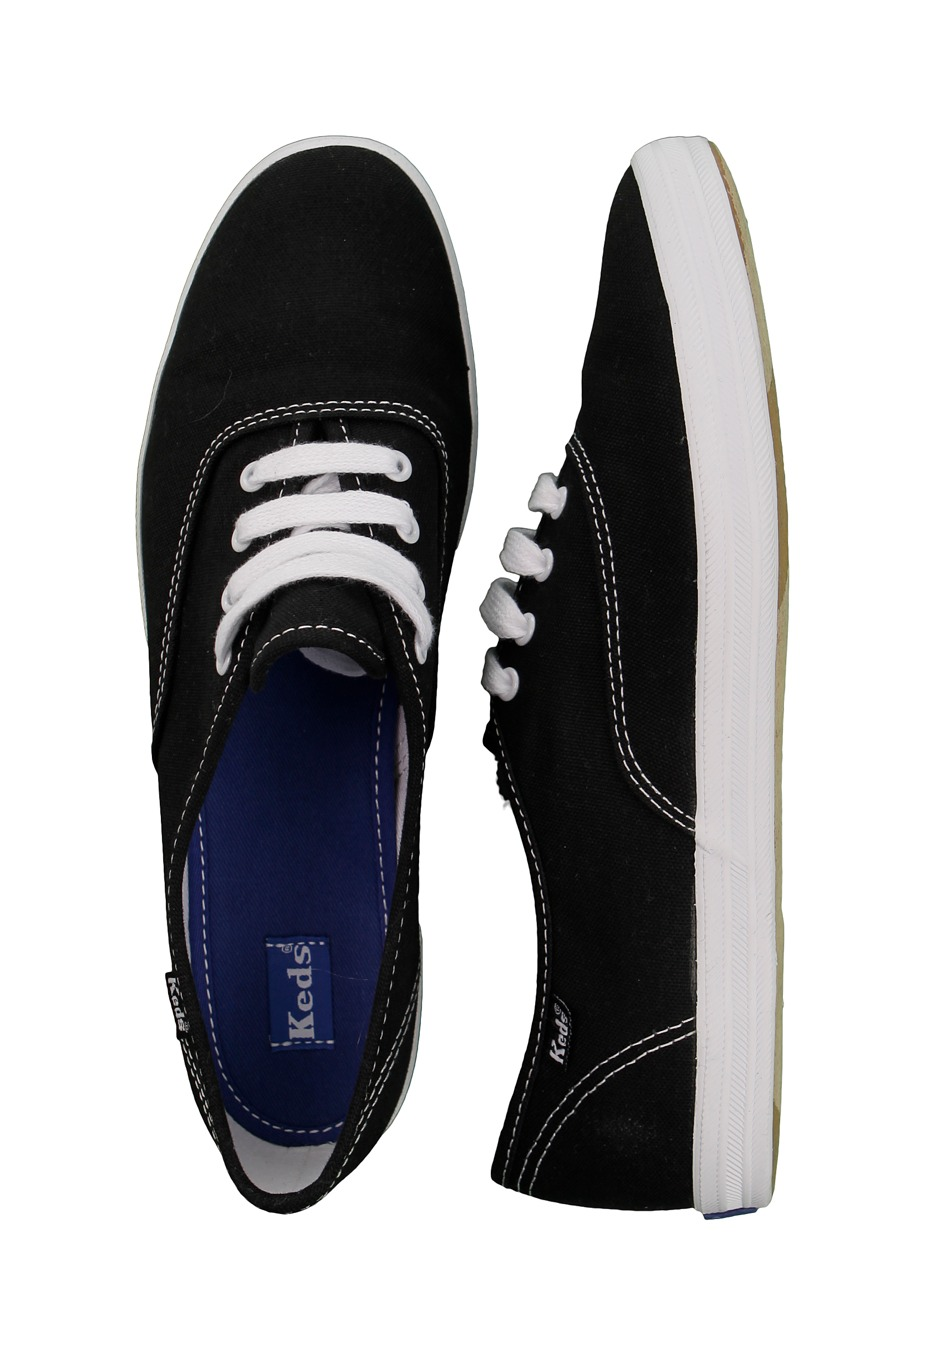 55a6c230f64 Keds - Champion CVO - Girl Shoes - Impericon.com US